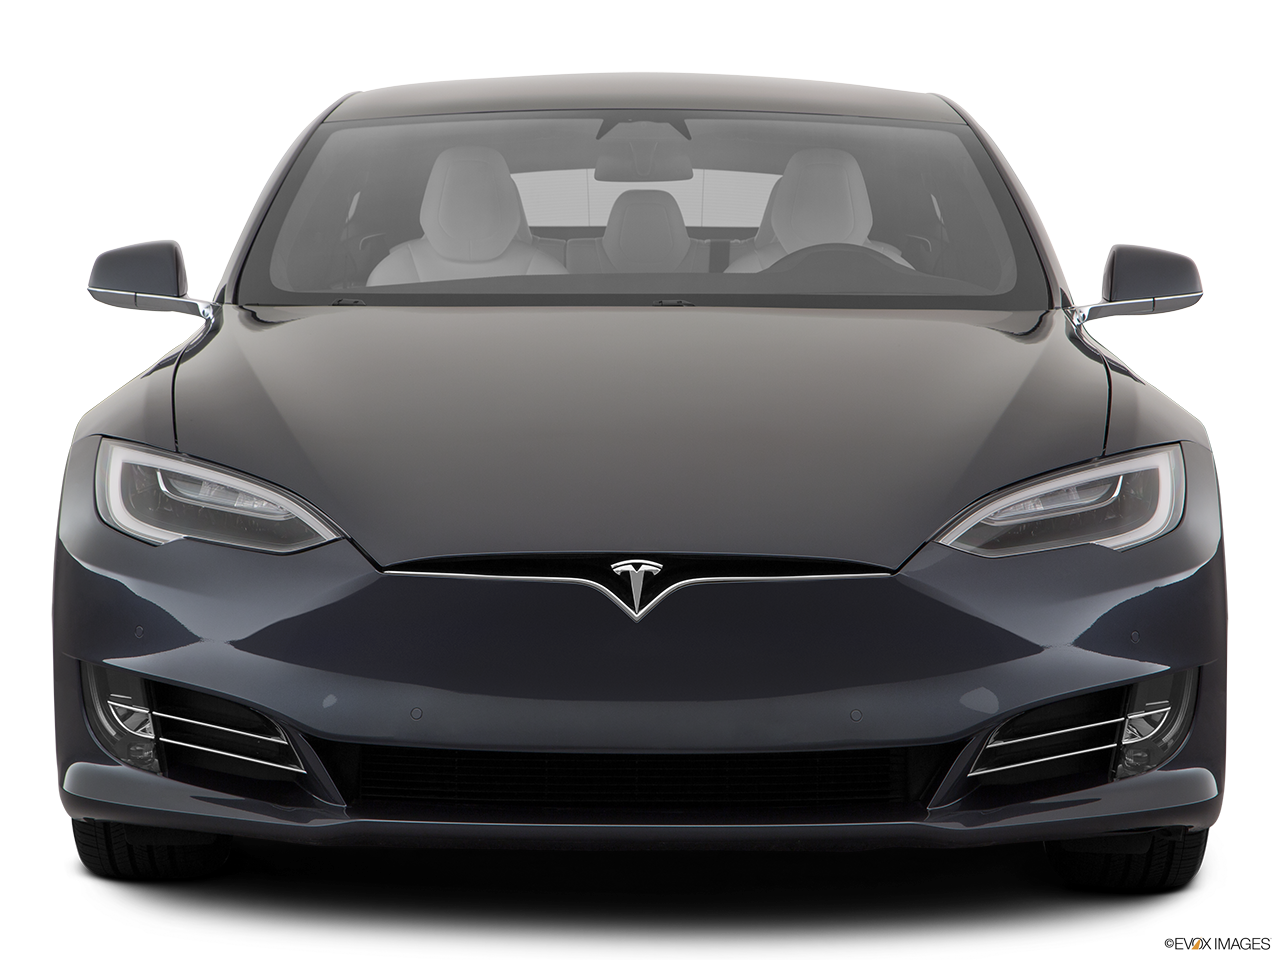 Front view of the Tesla Model S